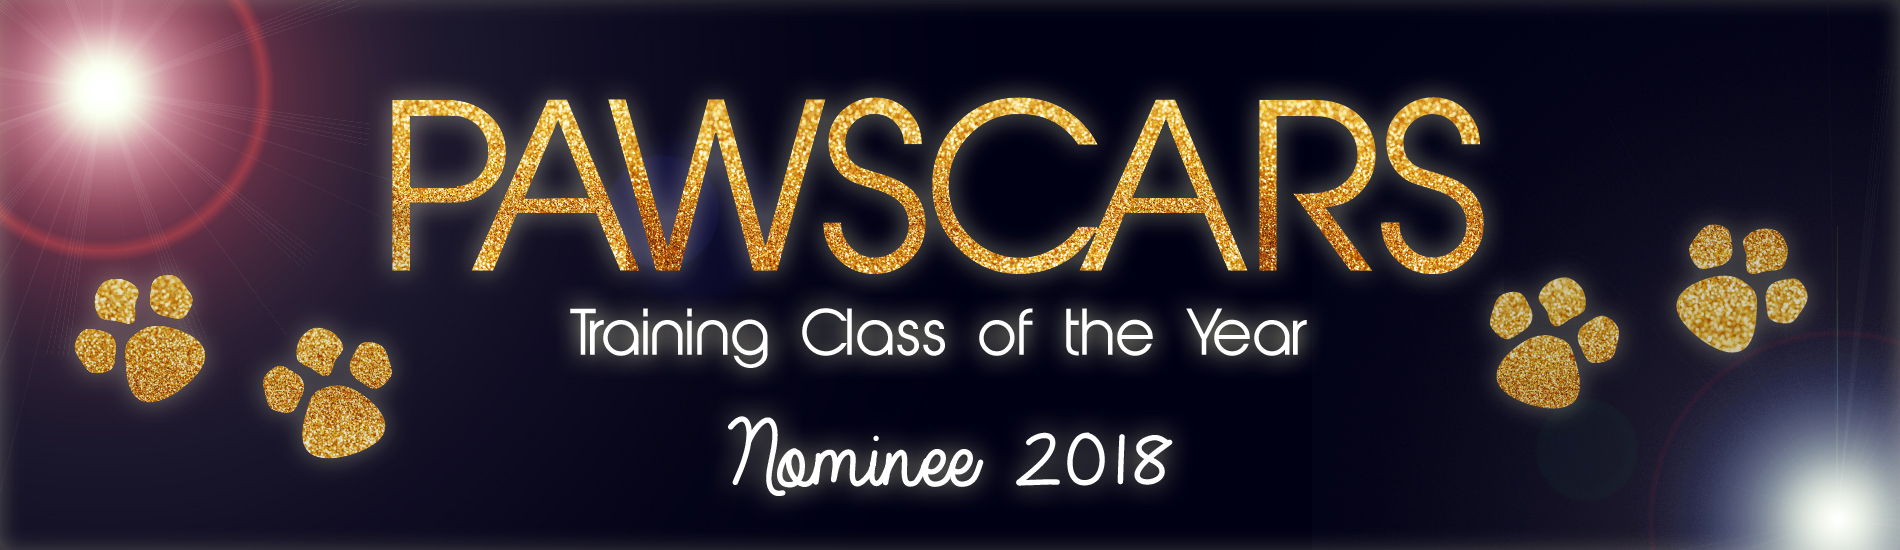 Pawscars Nominee 2018 Slider